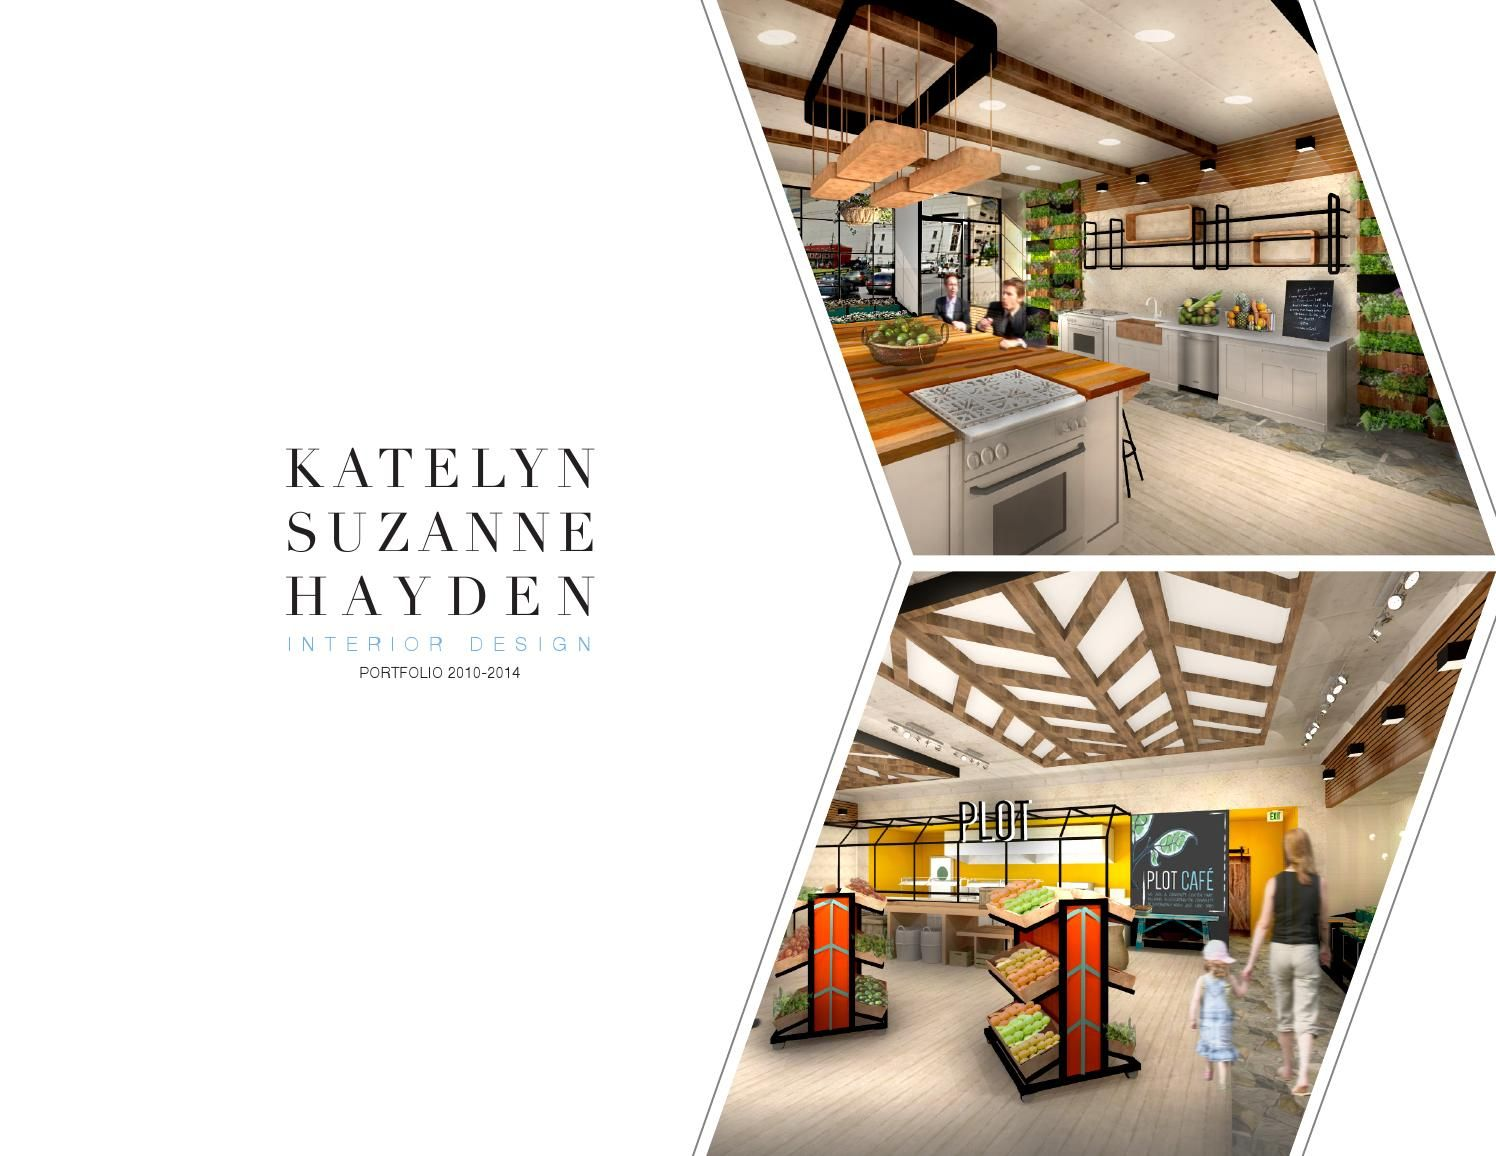 Interior design portfolio portfolio layouts portfolio - Interior design portfolio samples ...